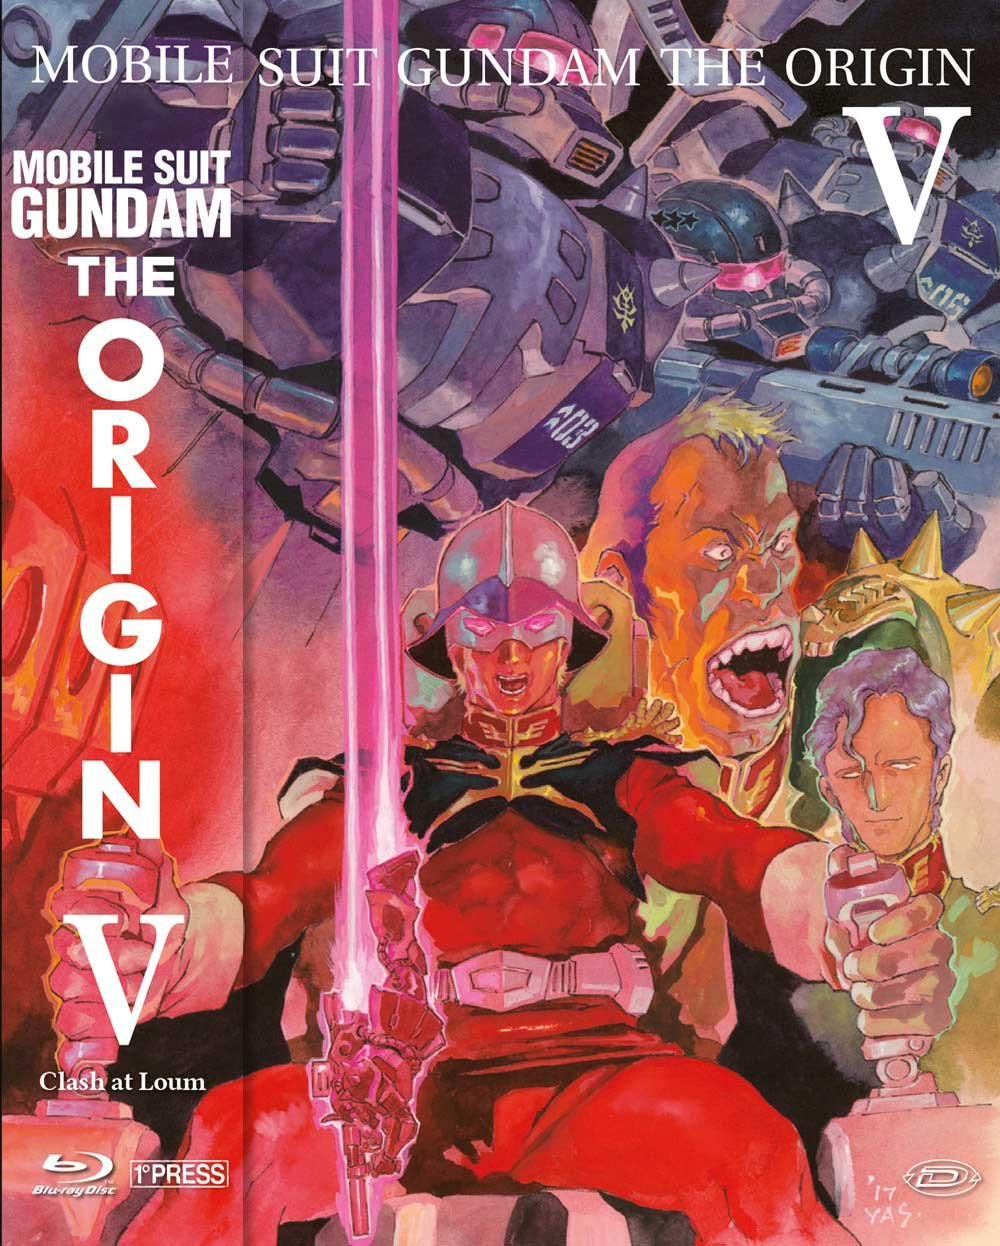 COF.MOBILE SUIT GUNDAM - THE ORIGIN V - CLASH AT LOUM (FIRST PRESS)